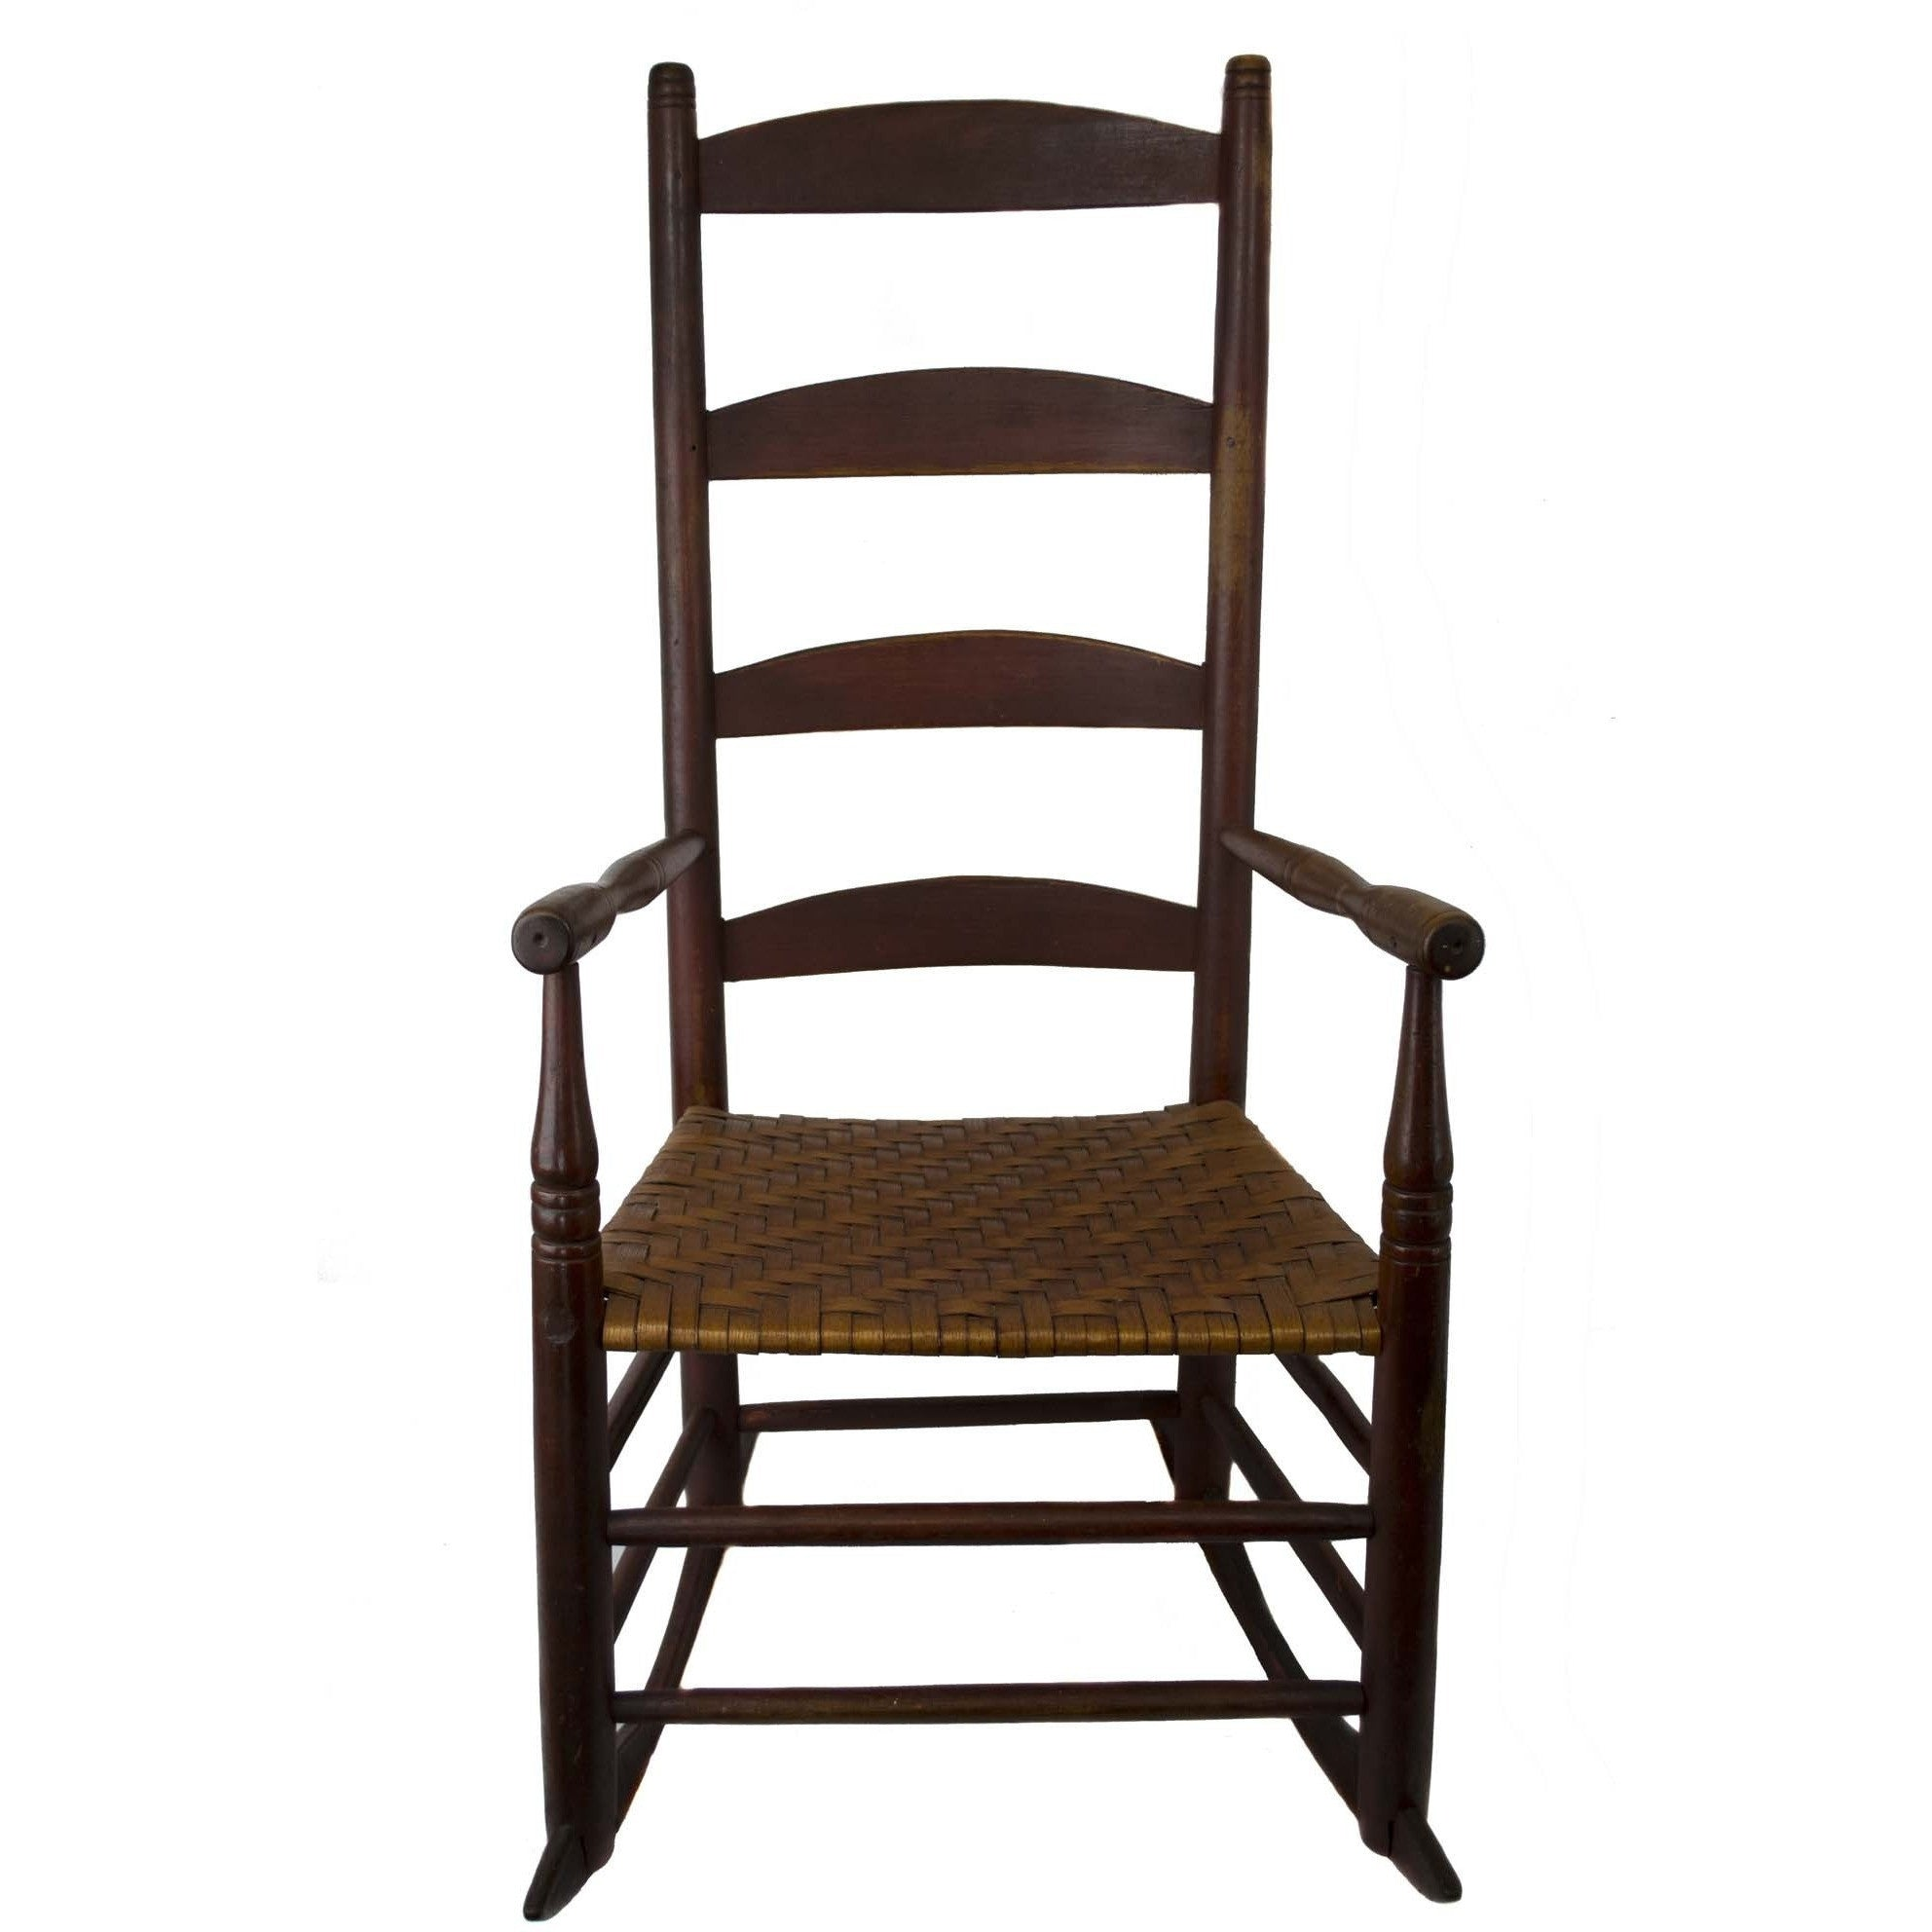 Vintage Shaker Ladder Back Rocking Chair – Avery Teach and Co